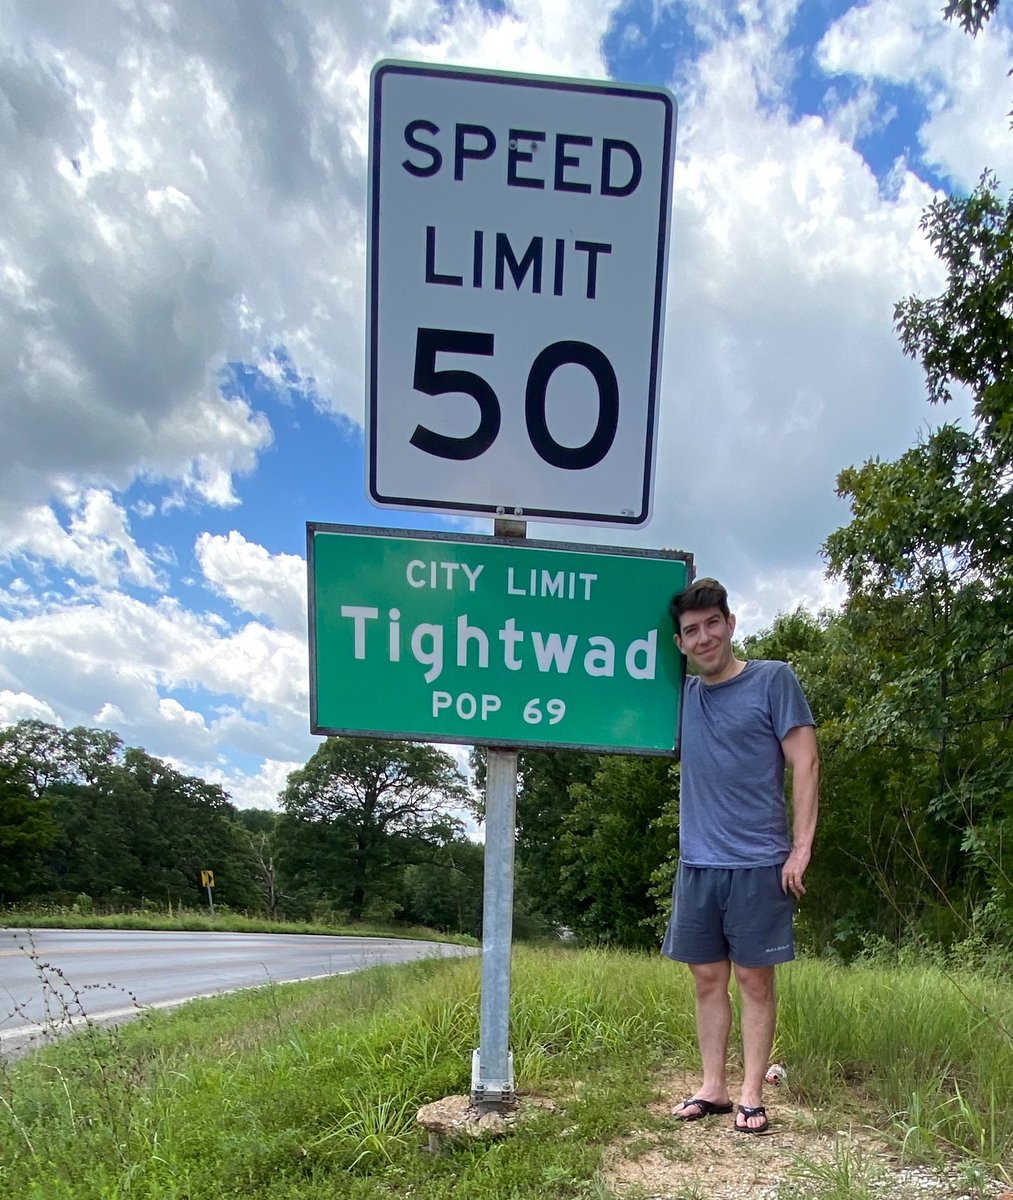 Had the great pleasure earlier today of driving through Tightwad, Missouri, the nicest village in America. https://t.co/s3rlt71bon